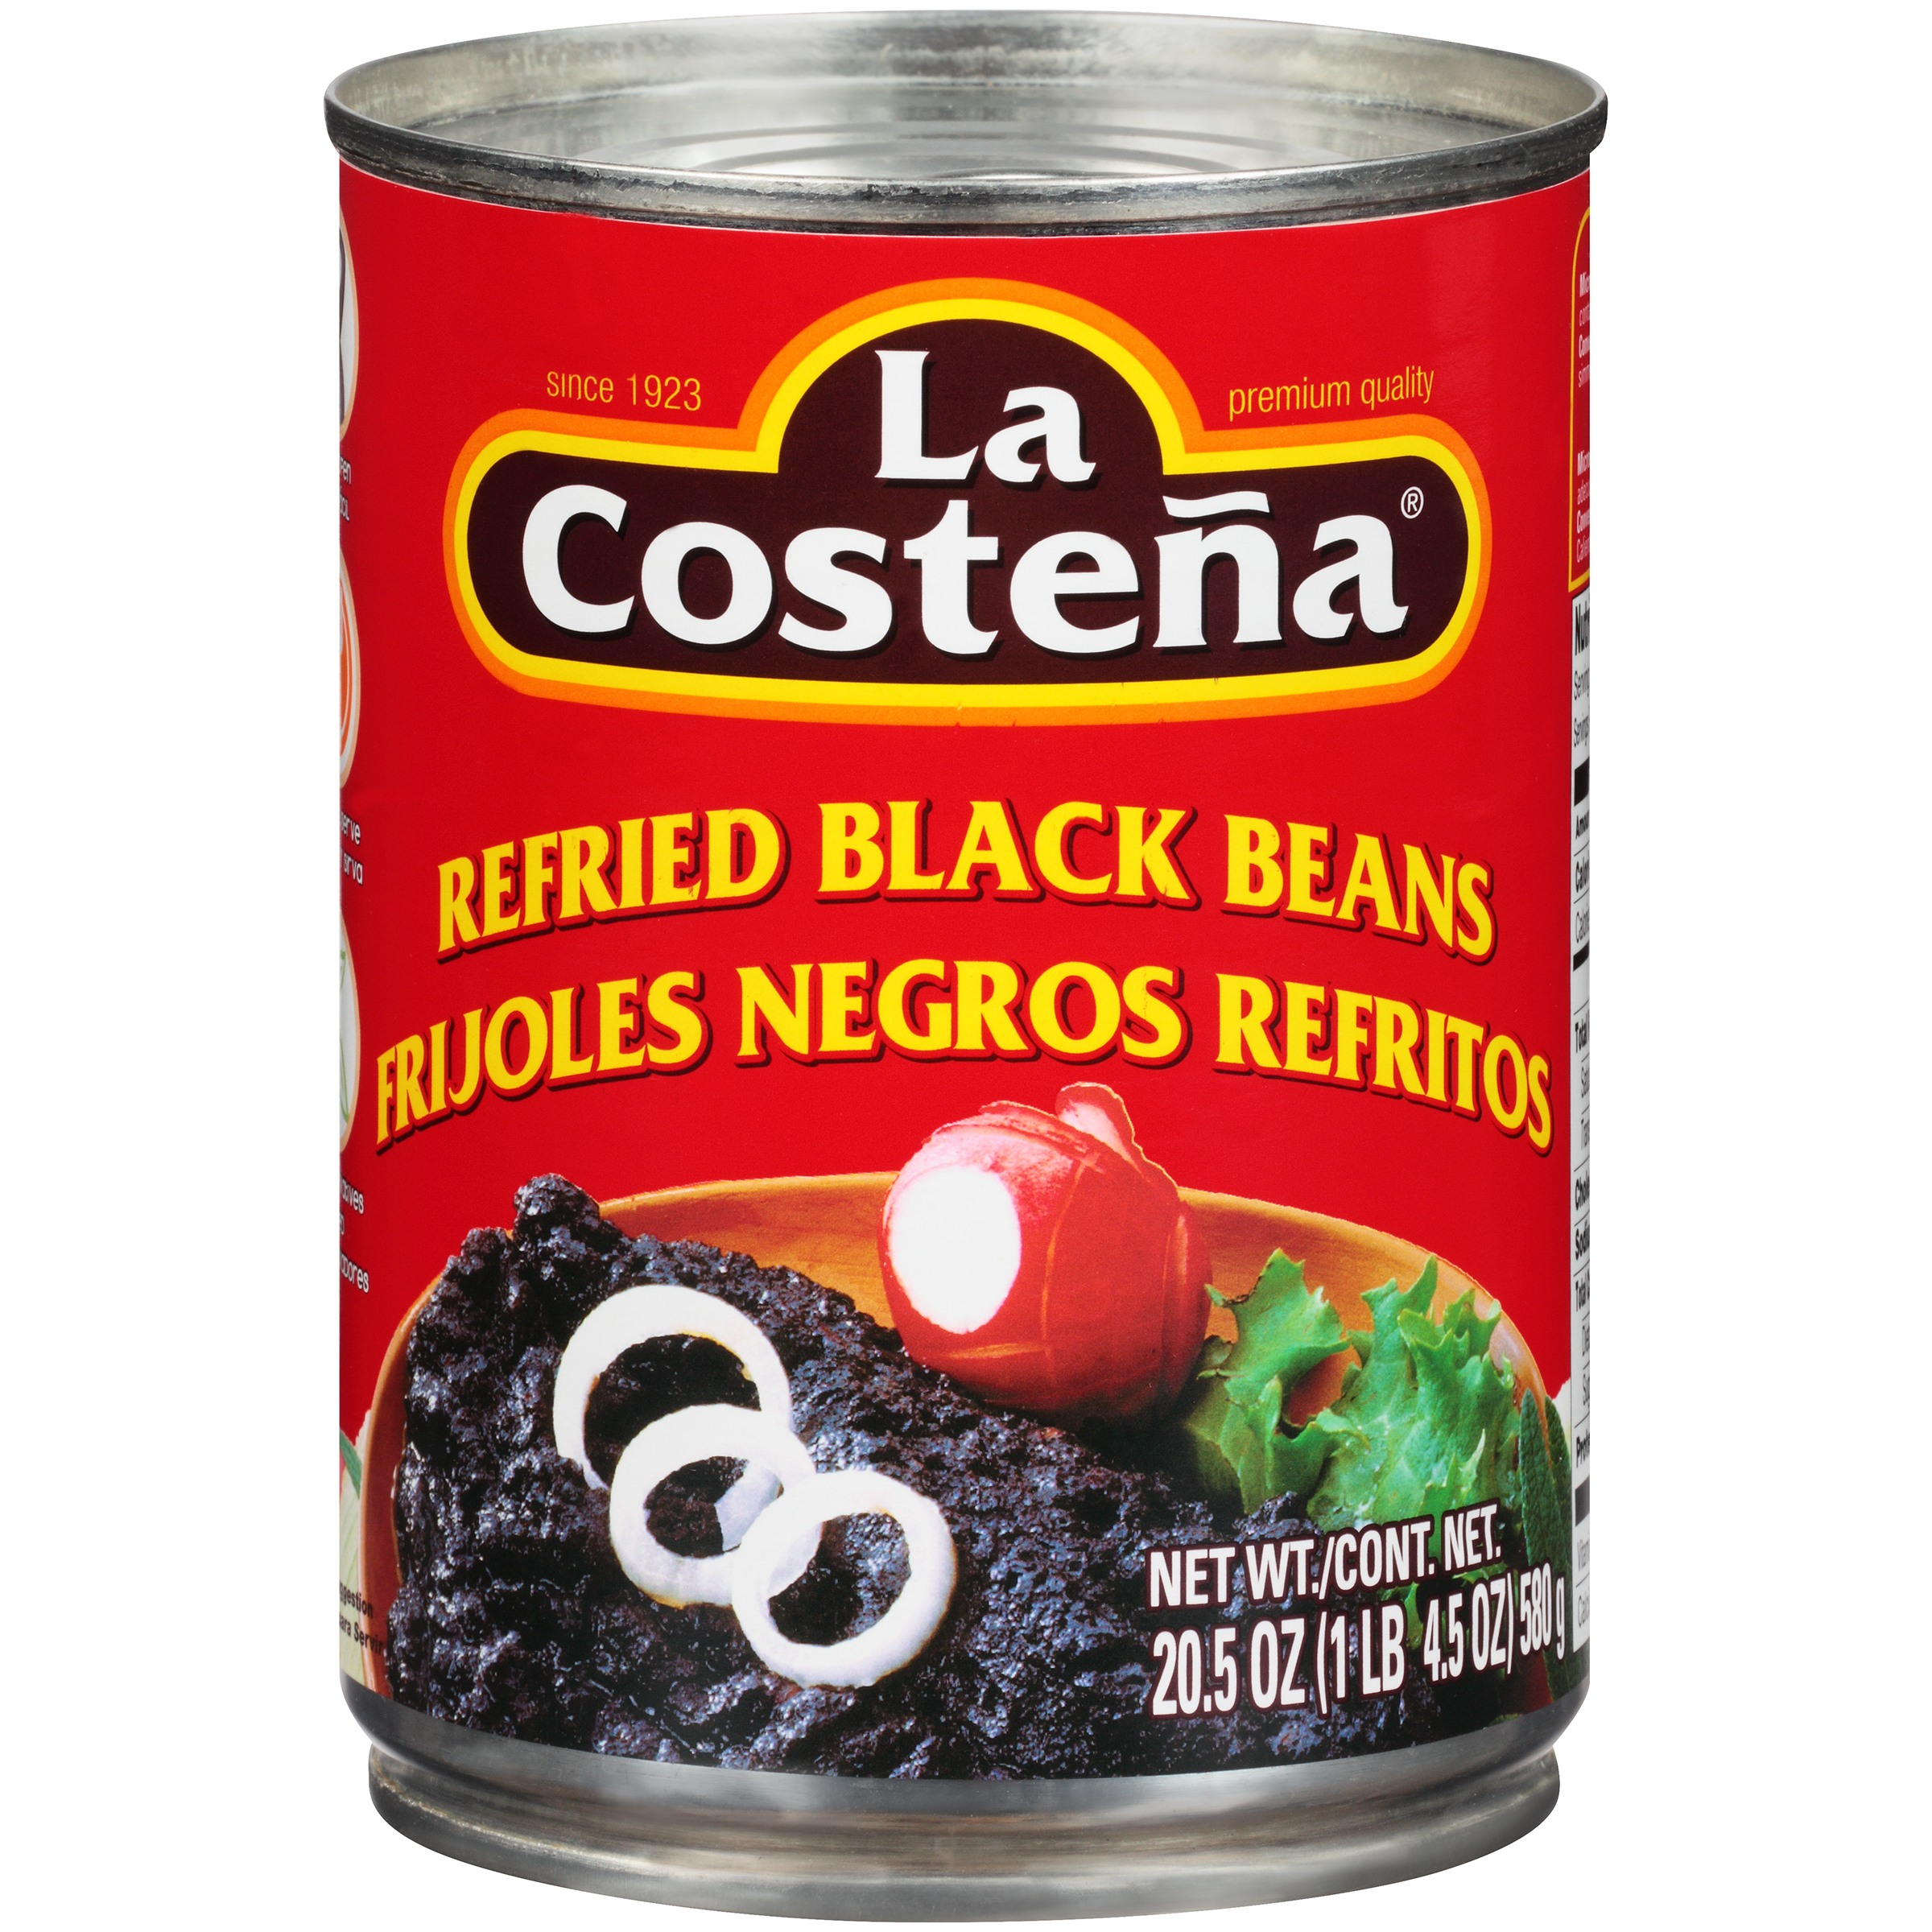 La Costena Refried Black Beans, 20.5 oz